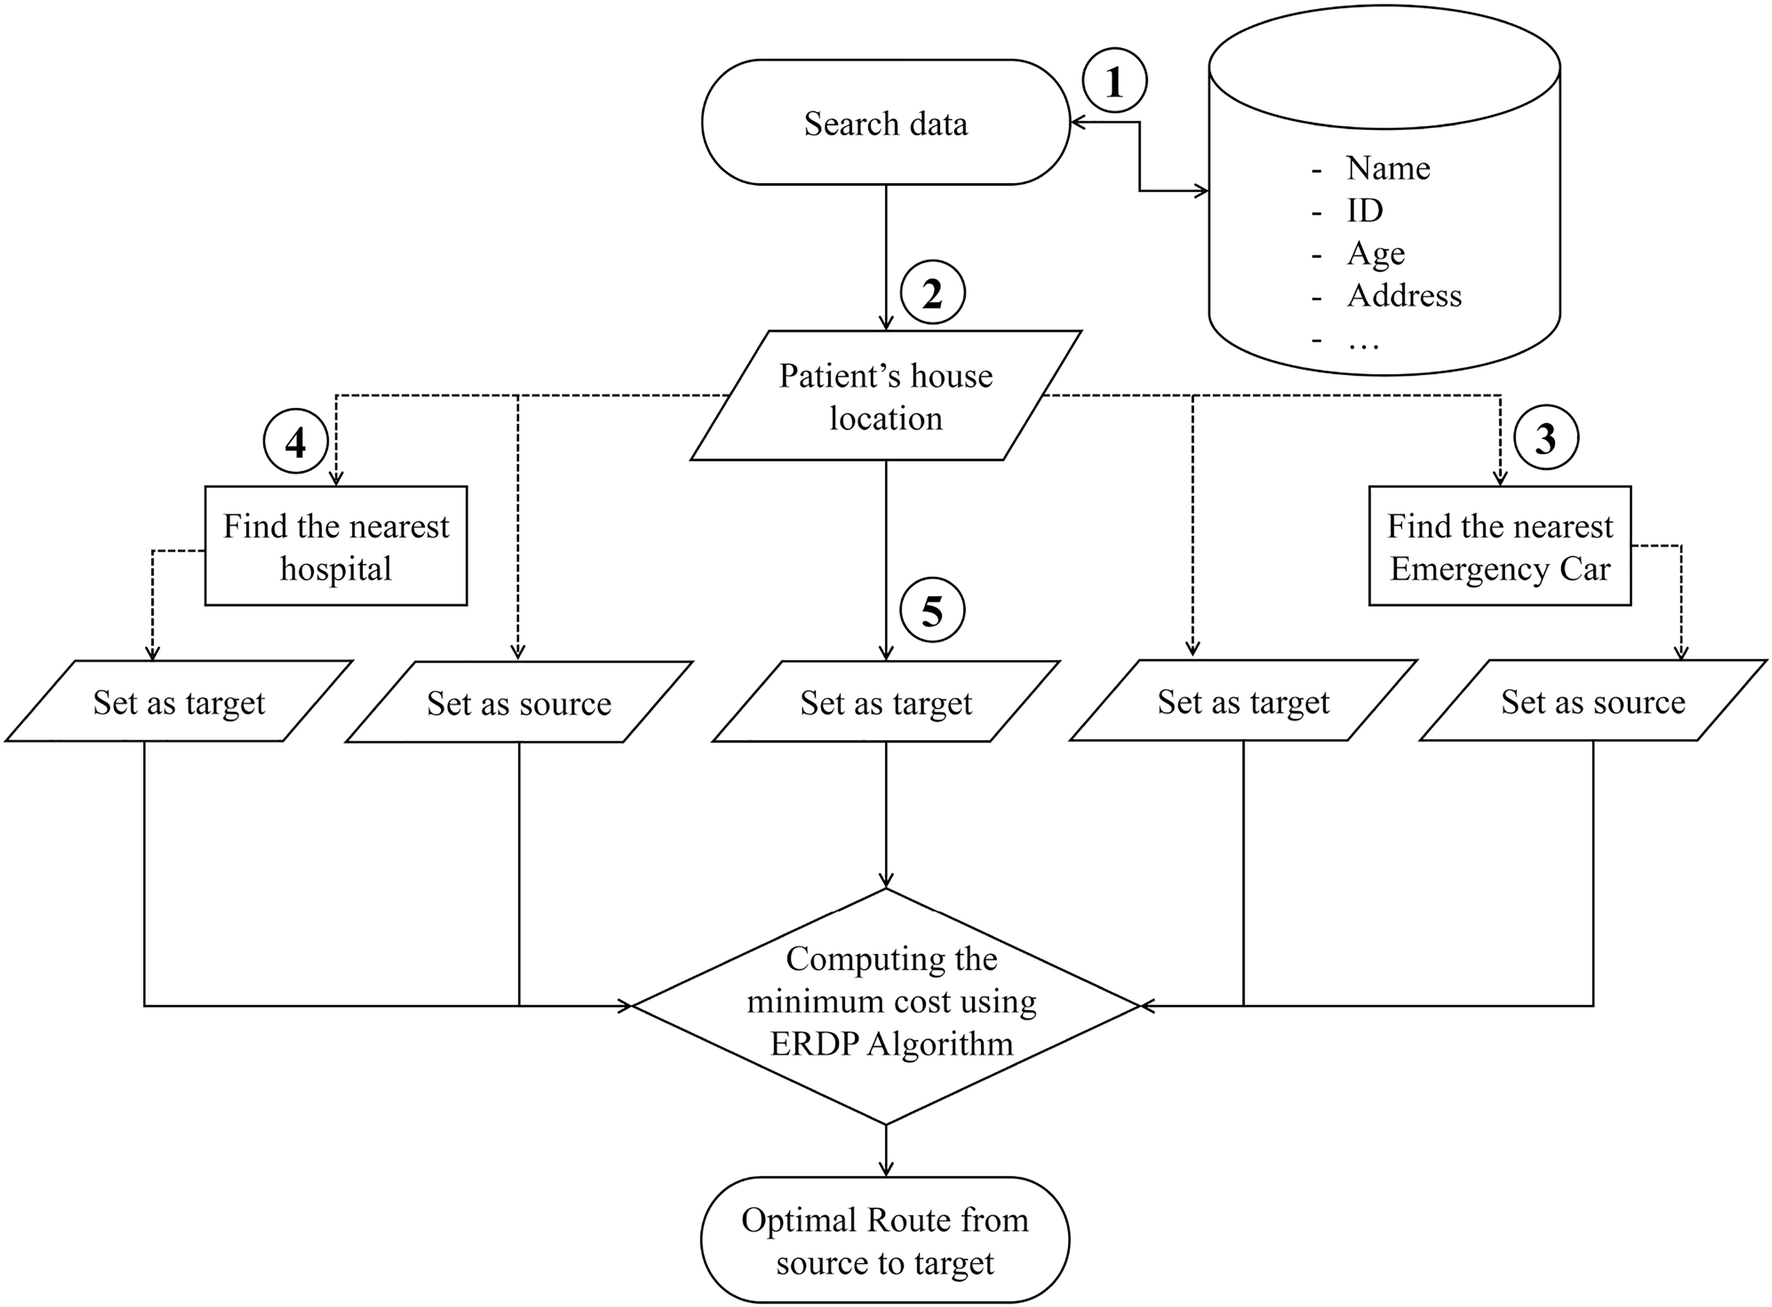 Development of optimal routing service for emergency scenarios using